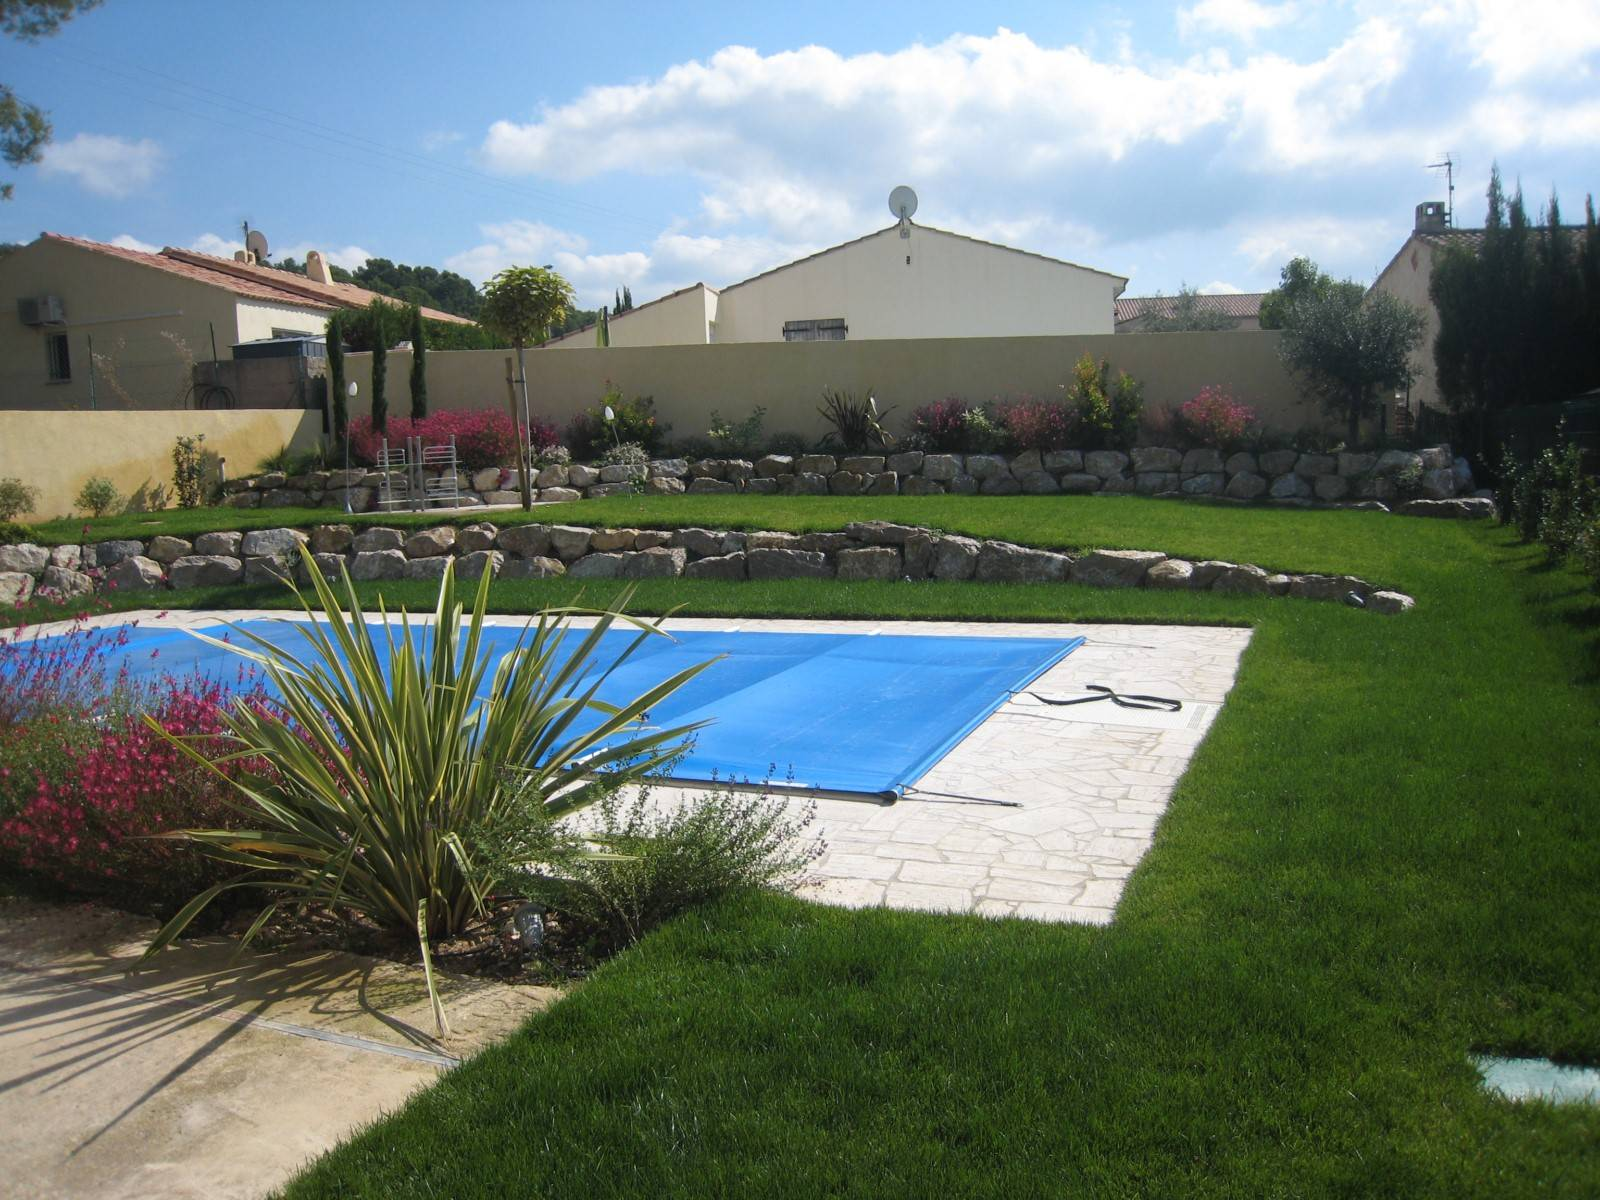 Am nagement d 39 un jardin autour d 39 une piscine velaux for Amenagement d une piscine